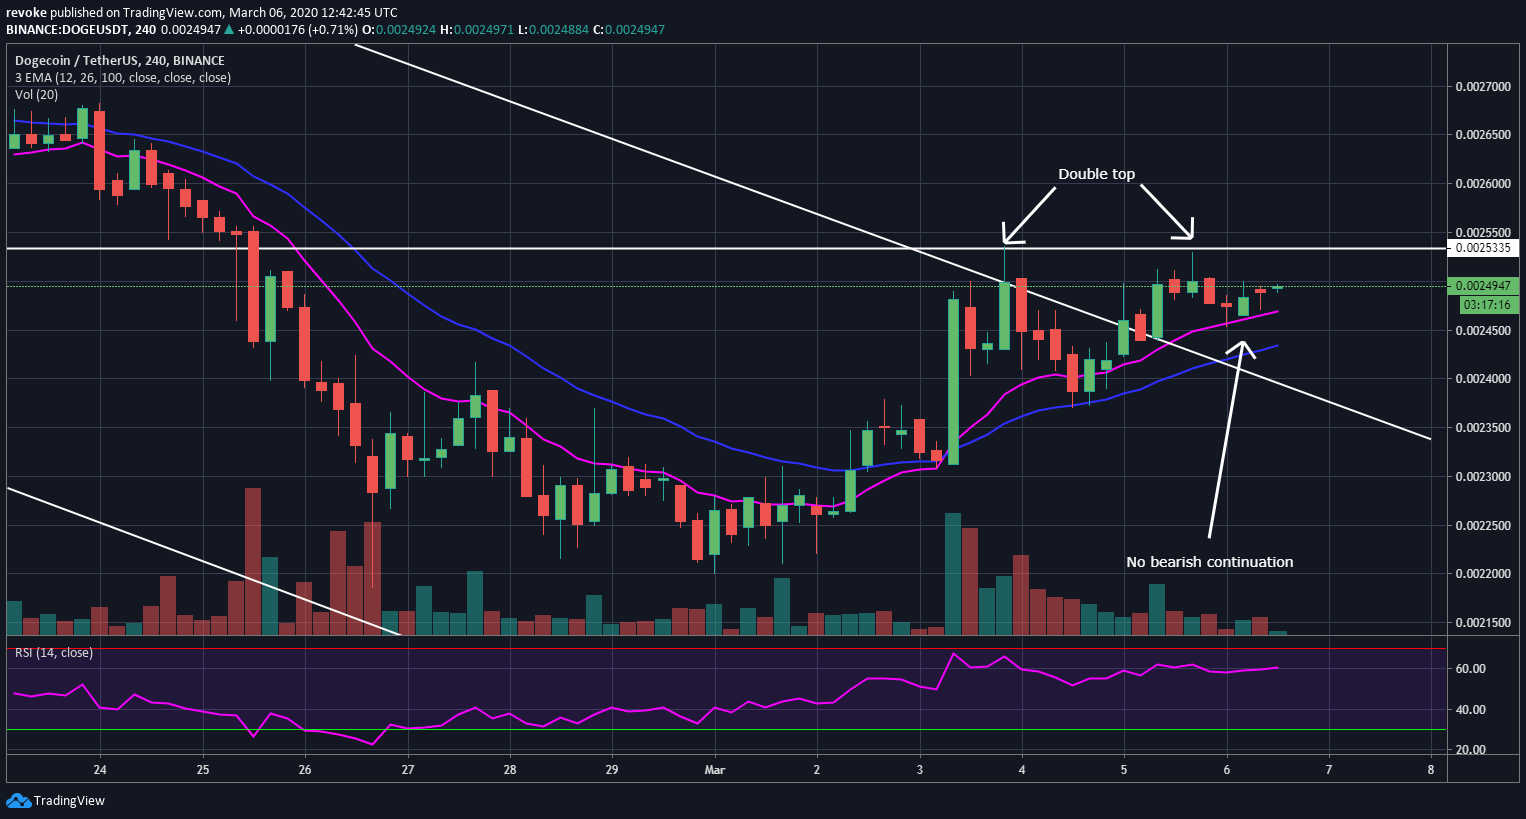 Dogecoin Price Prediction and Analysis in April 2020 - The ...